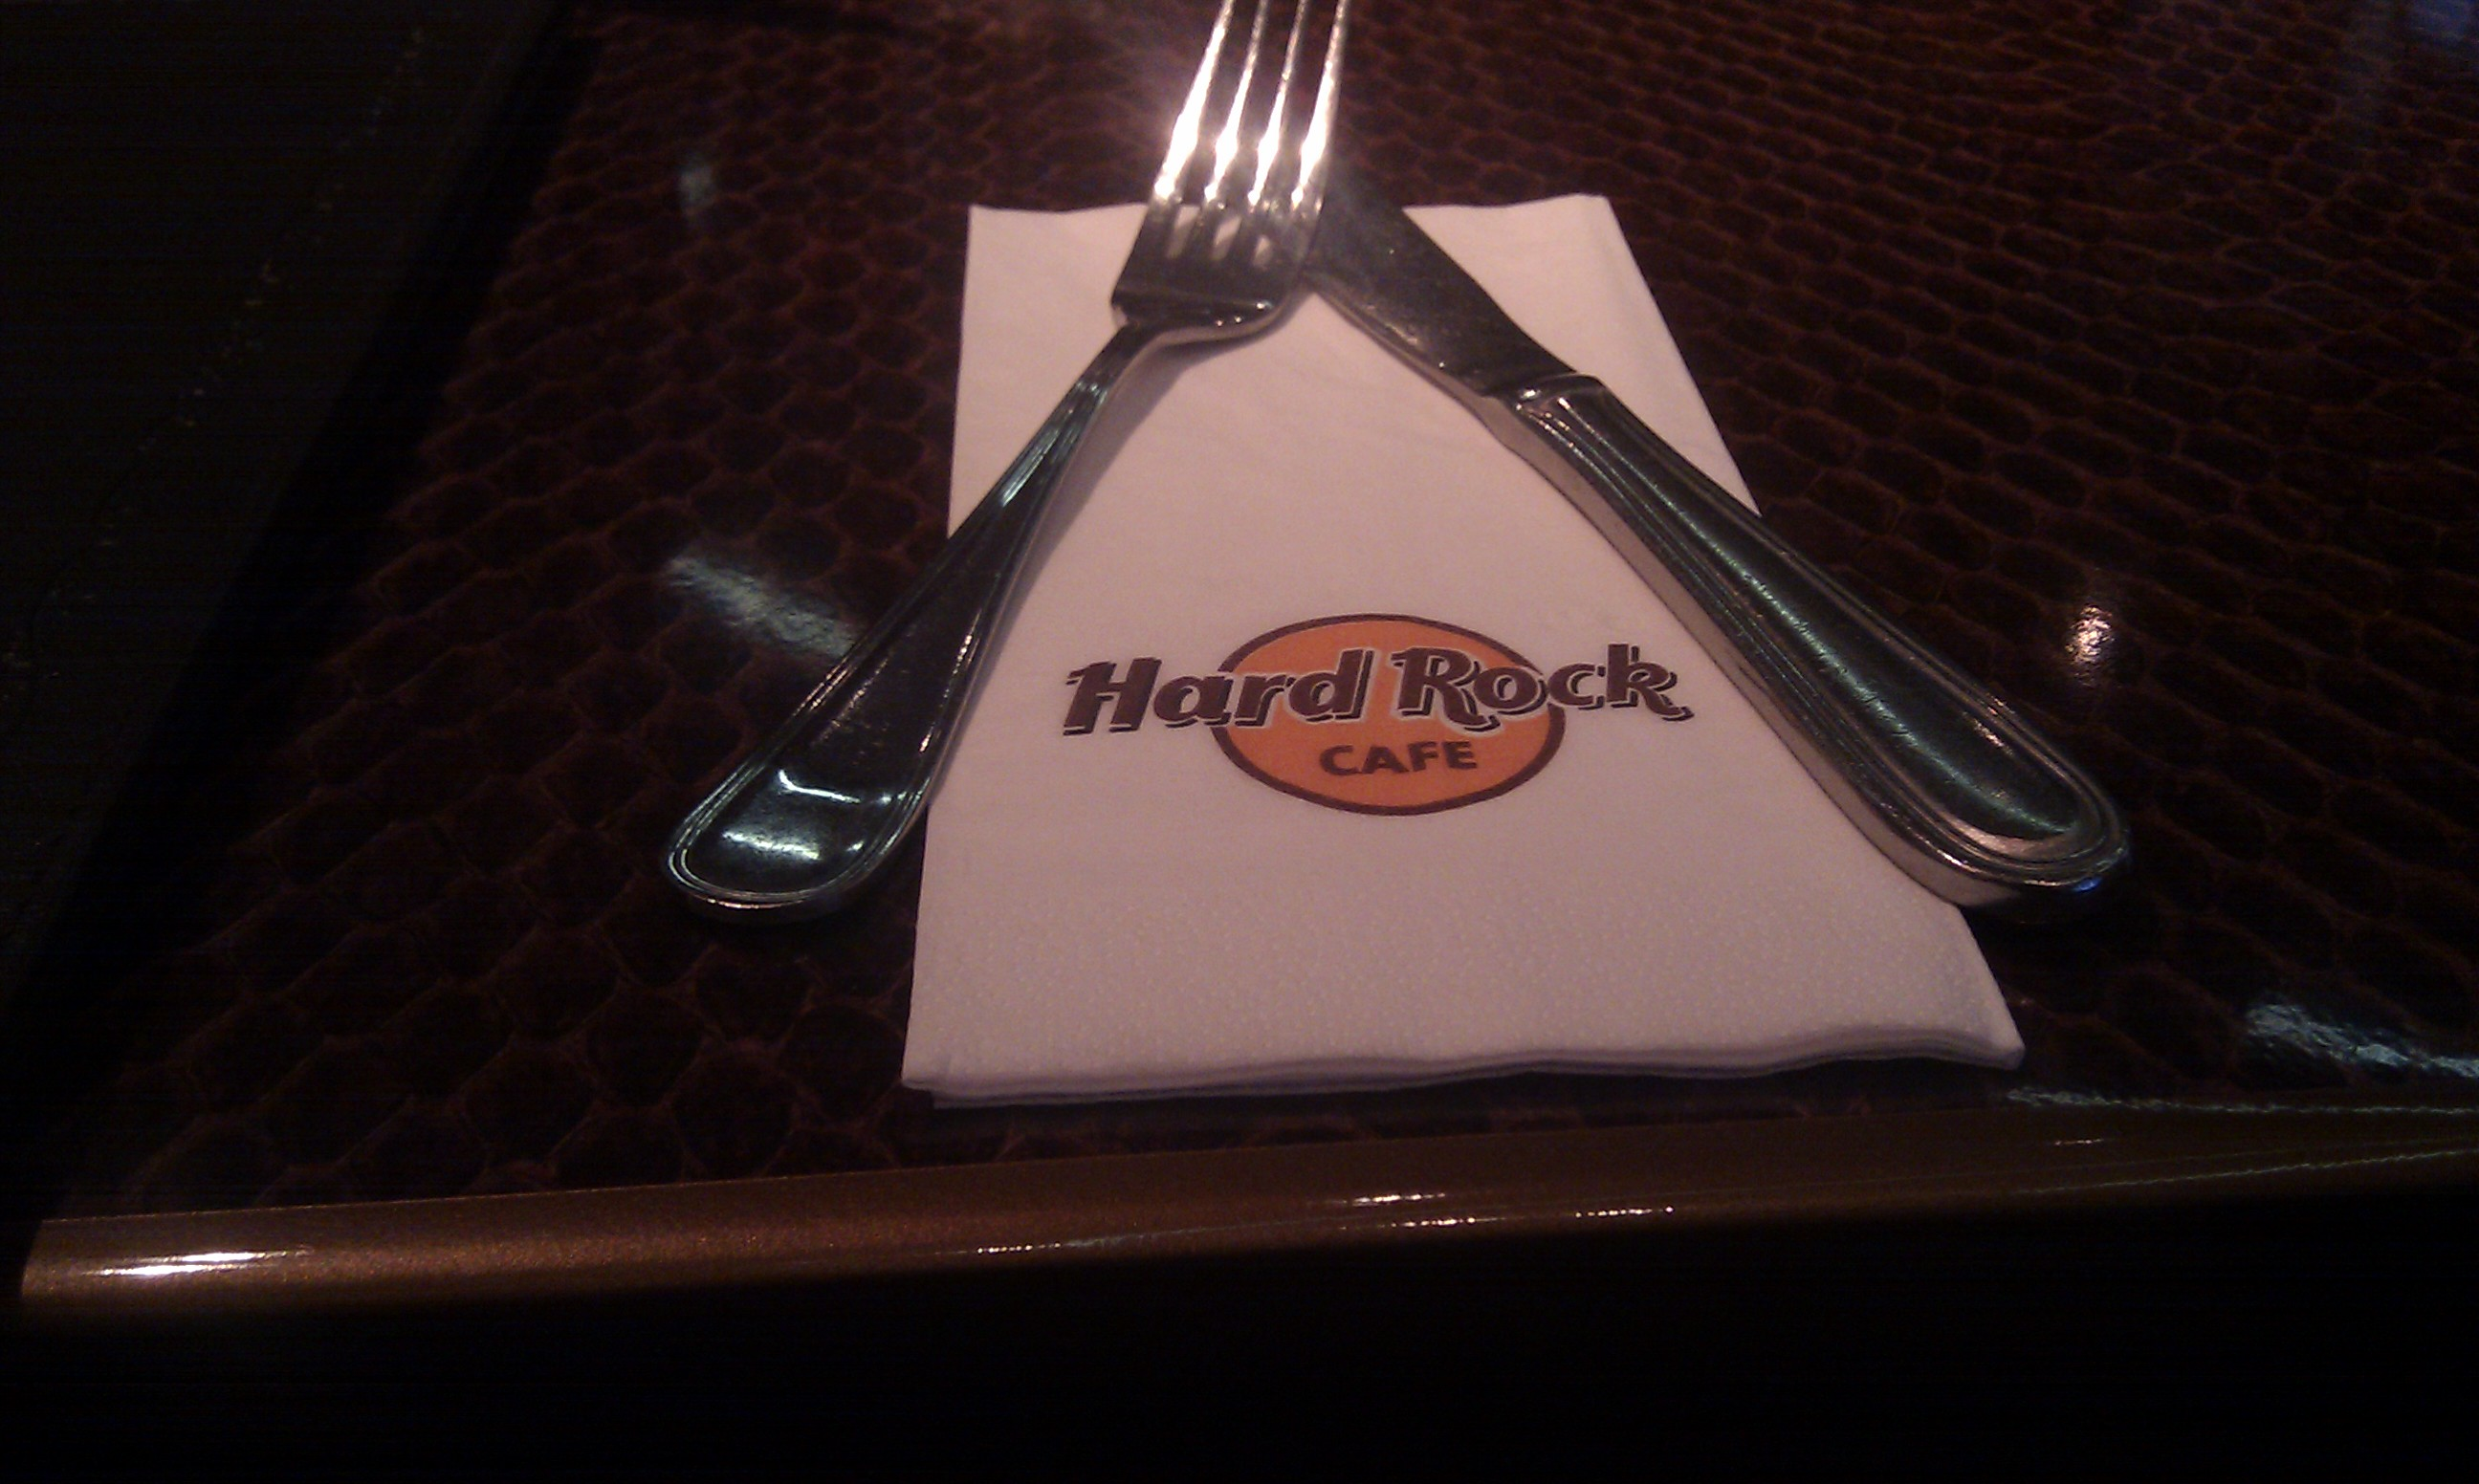 Hard Rock cafe salvetes